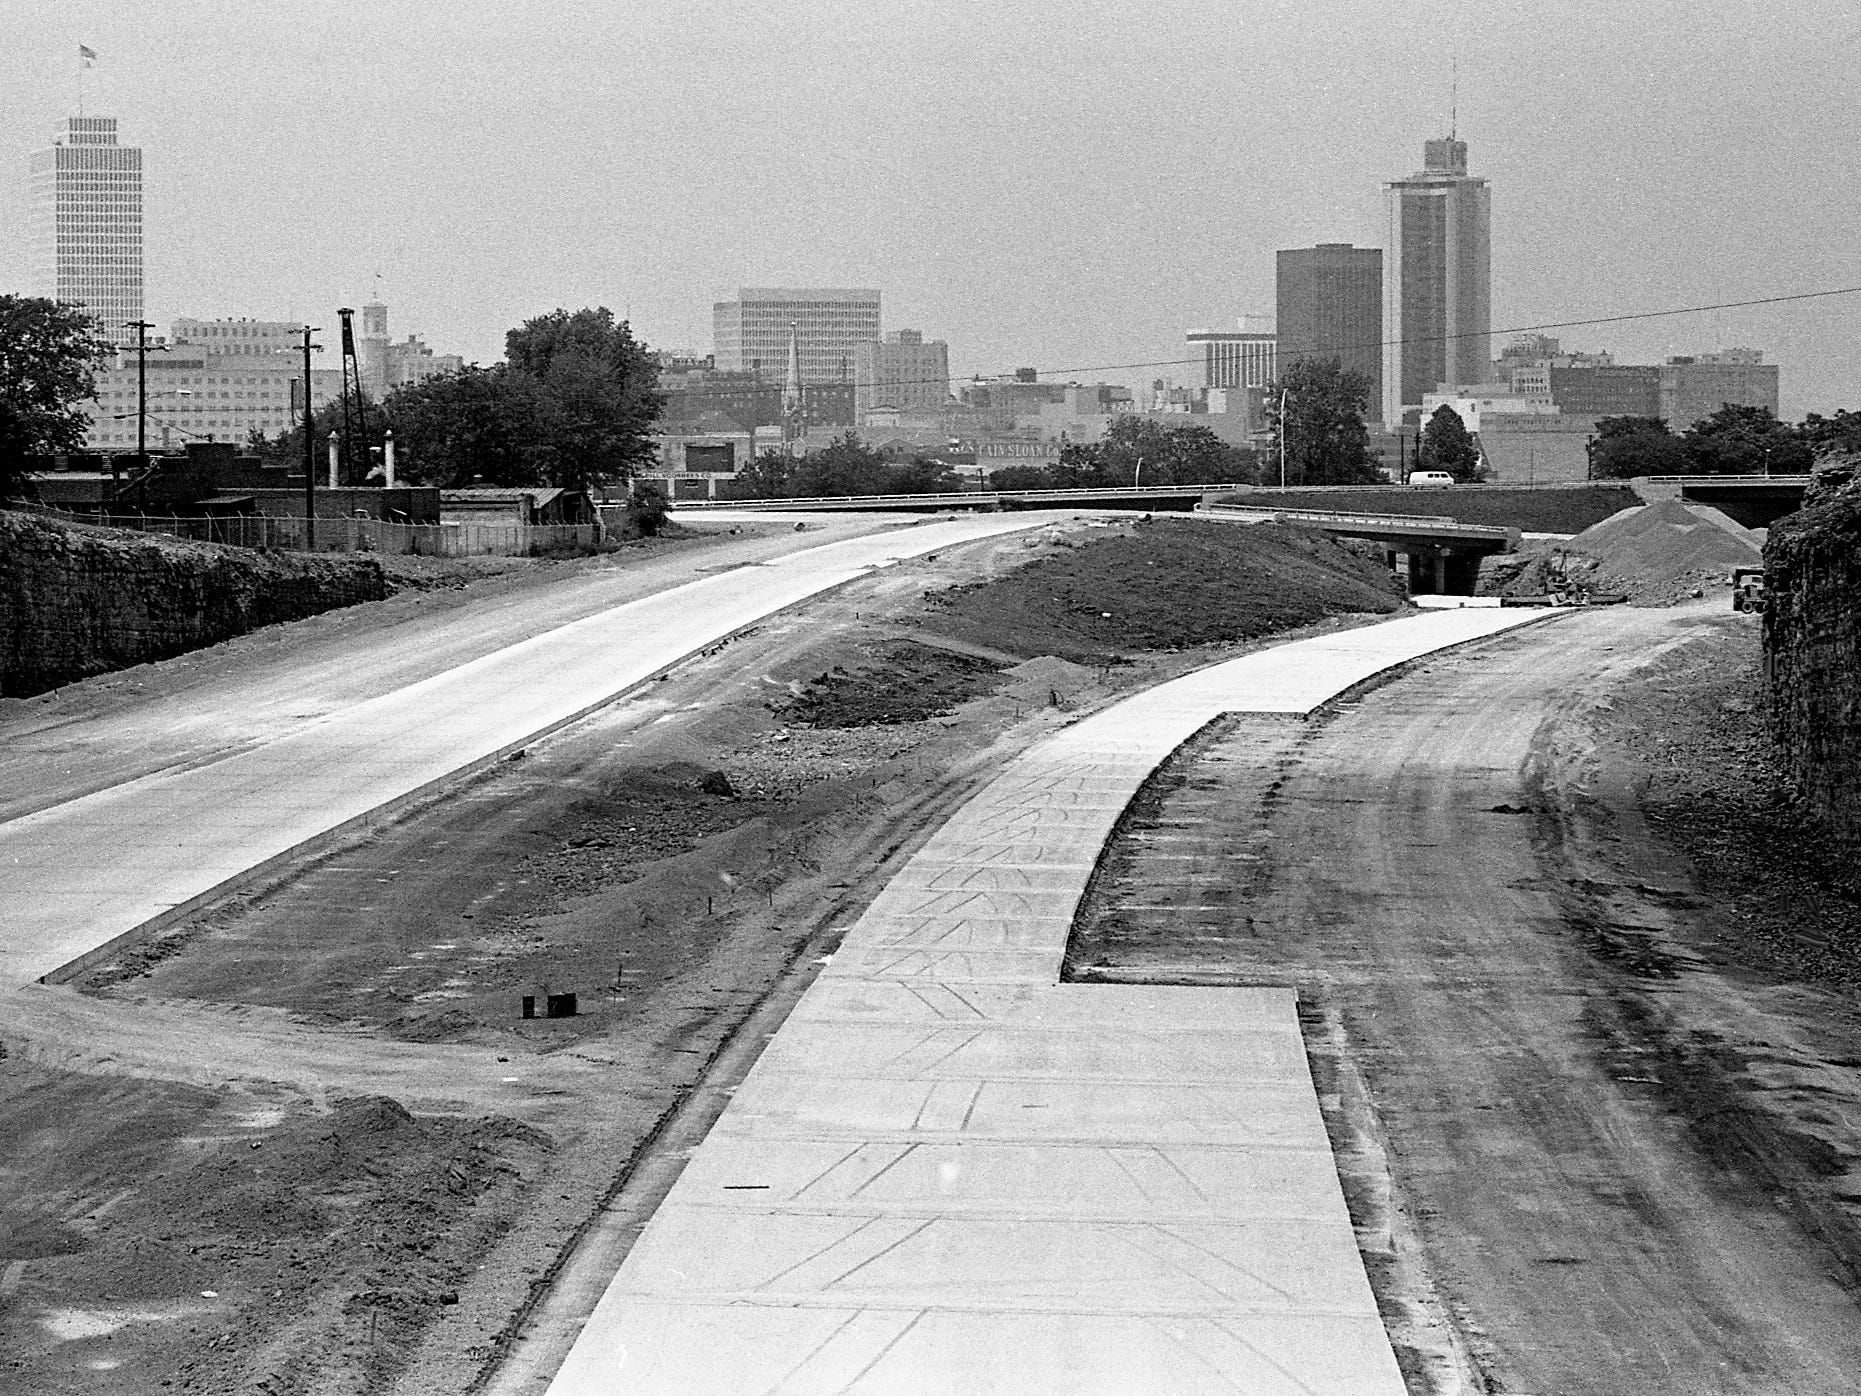 The growing Nashville skyline looms above a near-complete I-65 south of downtown Nashville. This view is from Chestnut Avenue overpass just south of the junction of I-65 and I-40 (the inter loop) on July 9, 1972.